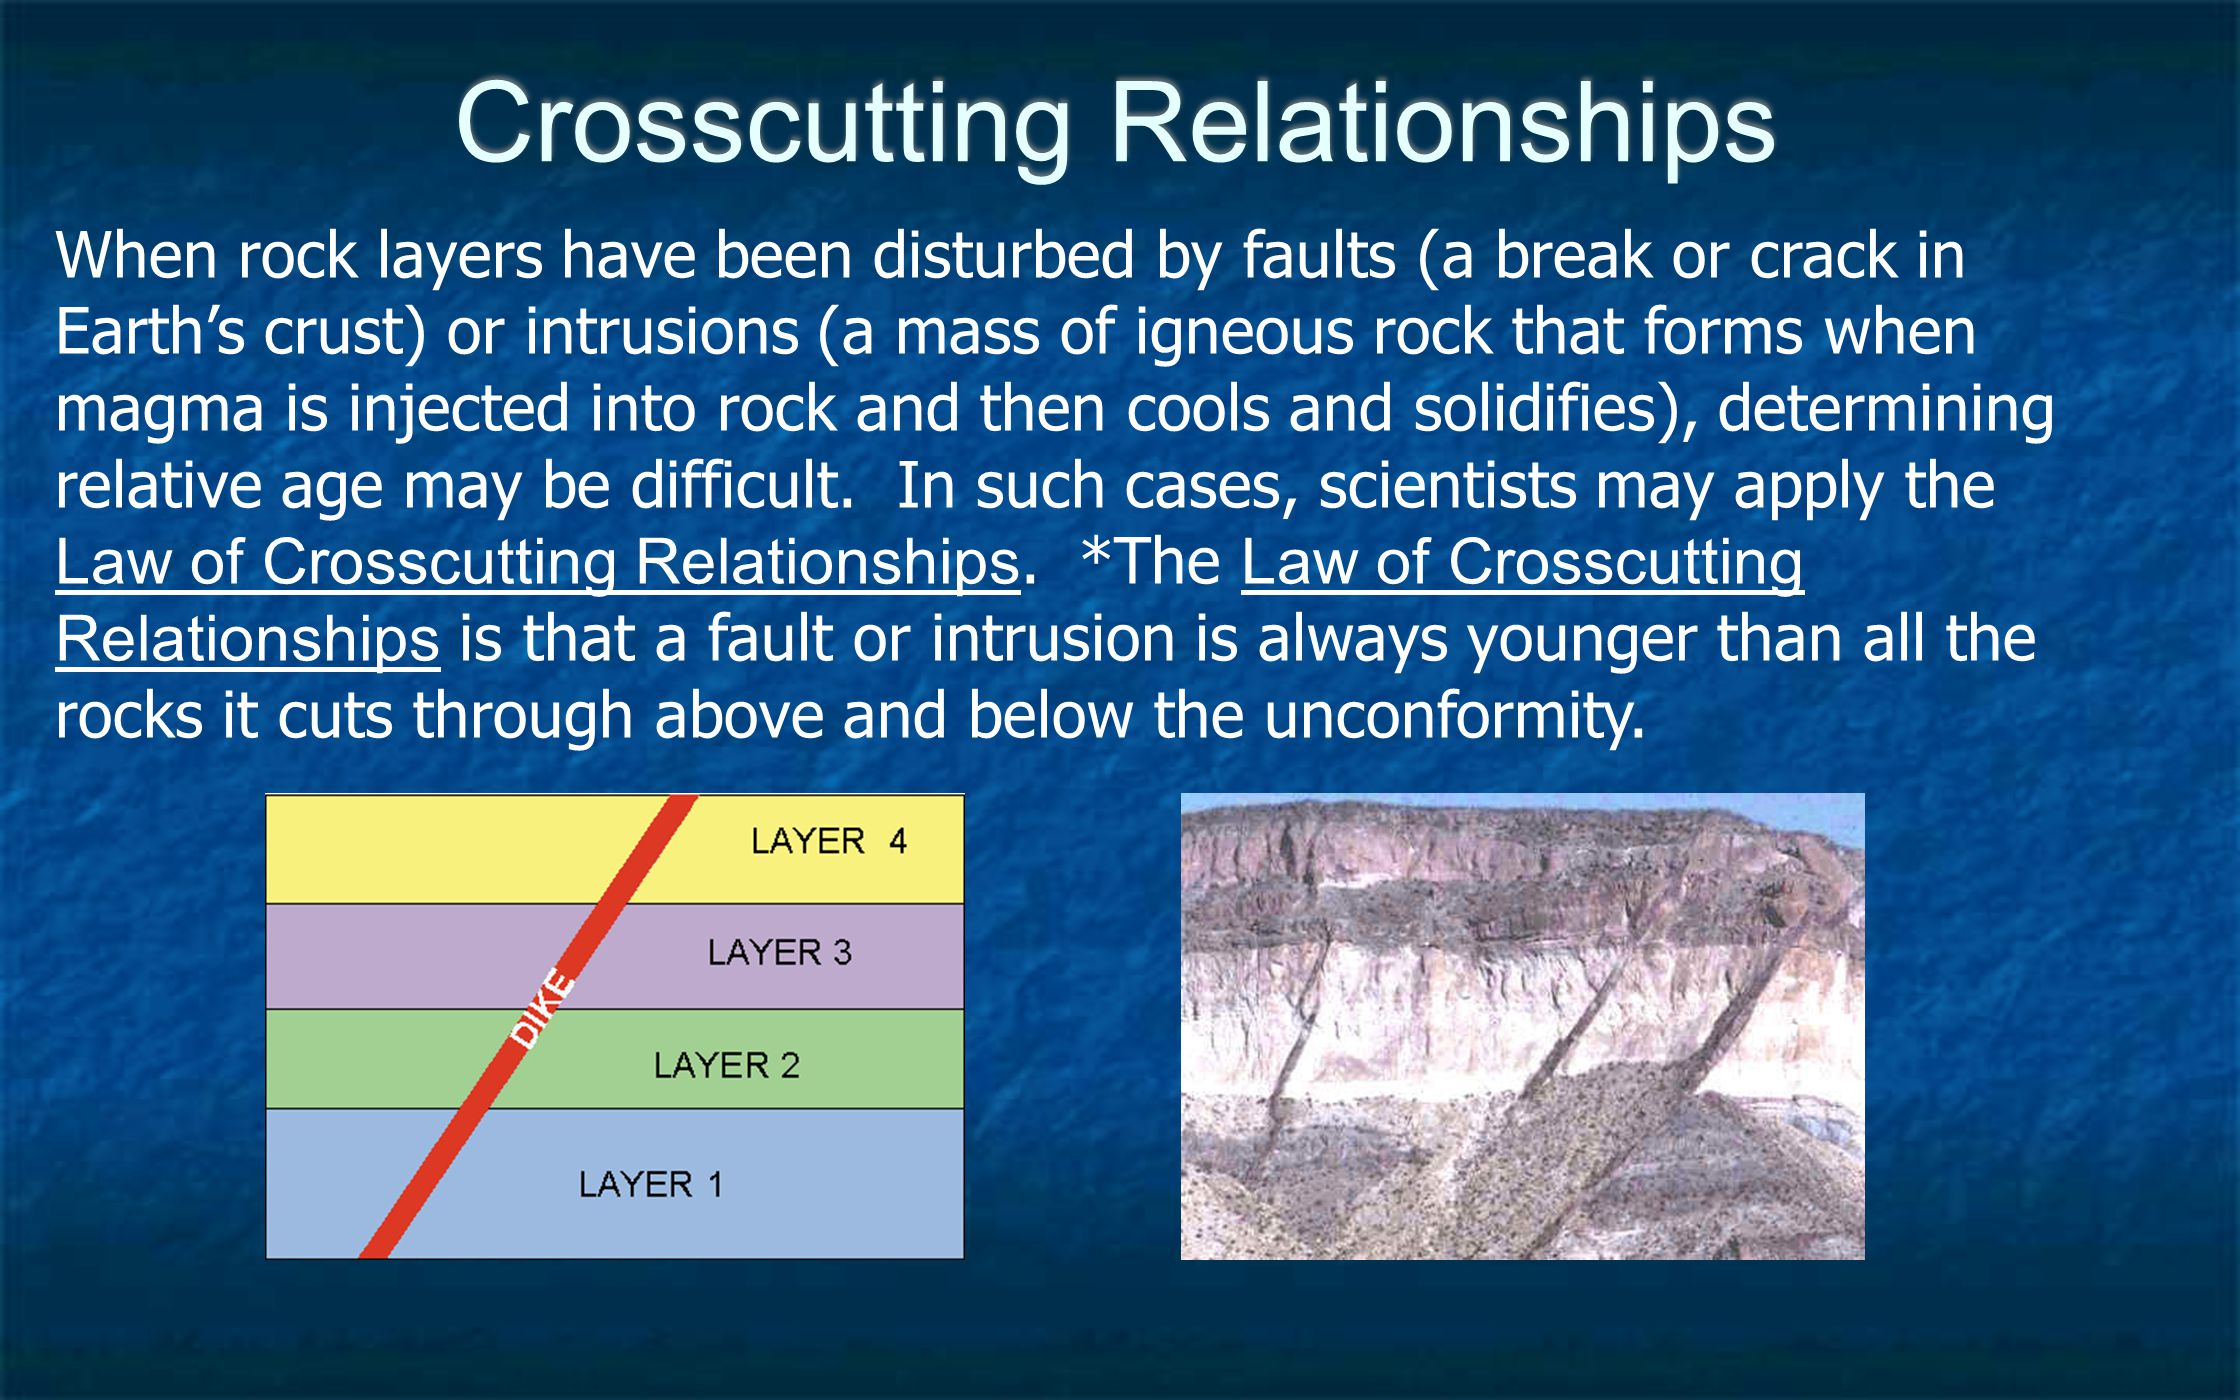 Relative Age Based on what you now know about the Law of Superposition, the Principle of Original Horizontality, unconformities, and the Law of Crosscutting Relationships can you place the layers indicated in the diagram in the correct order, starting from the oldest layer.